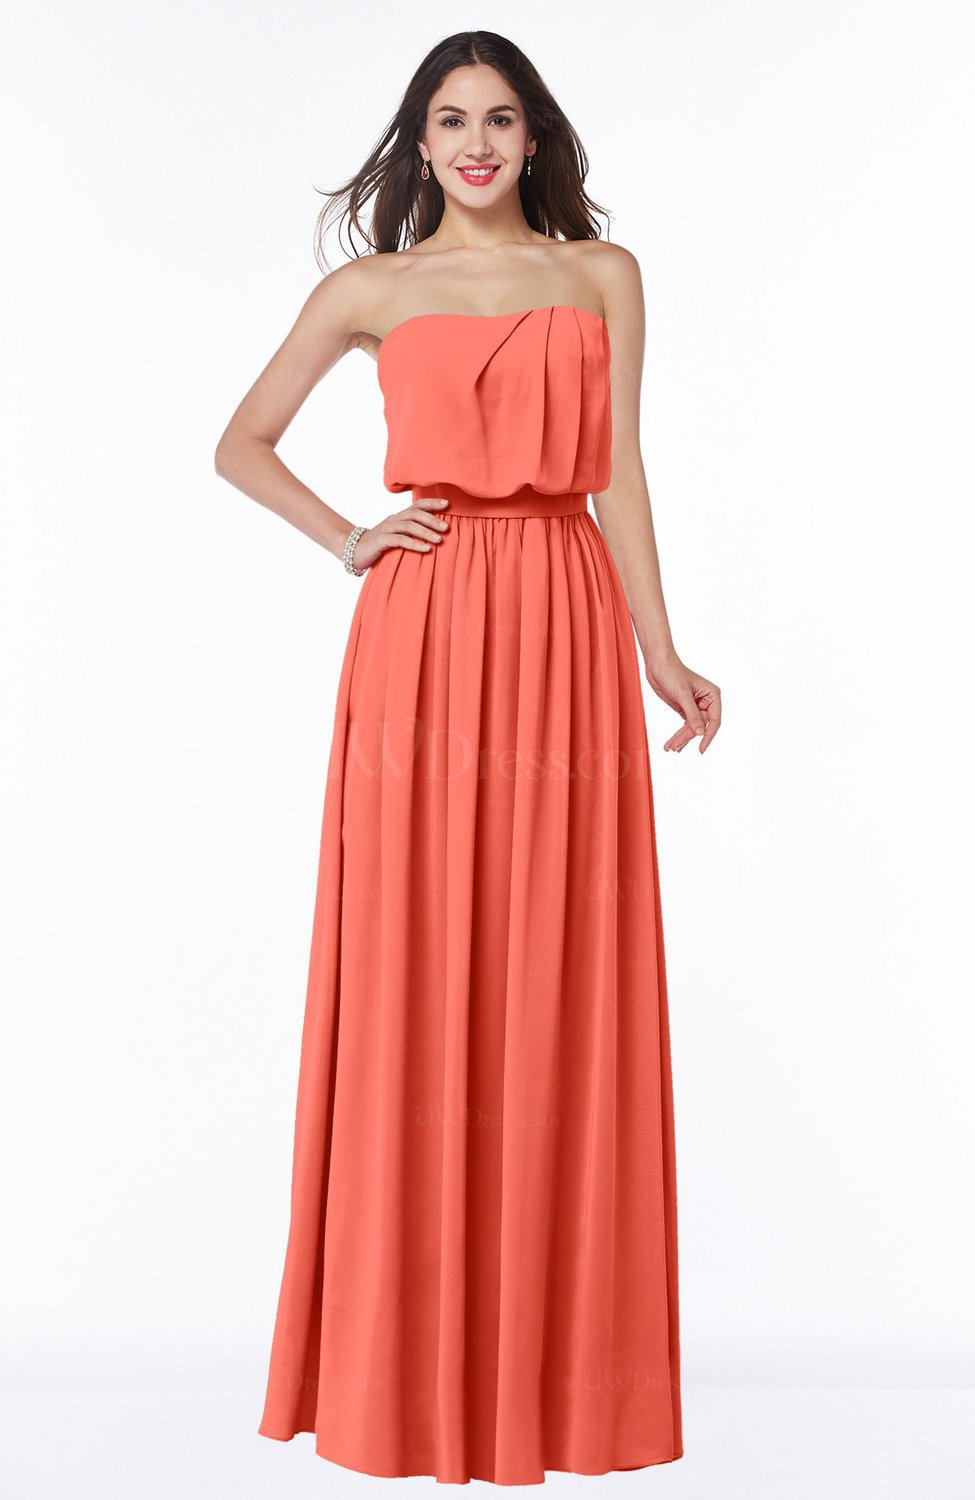 03c3a078b295 Living Coral Romantic A-line Strapless Half Backless Chiffon Ribbon Plus  Size Bridesmaid Dresses (Style D16436)